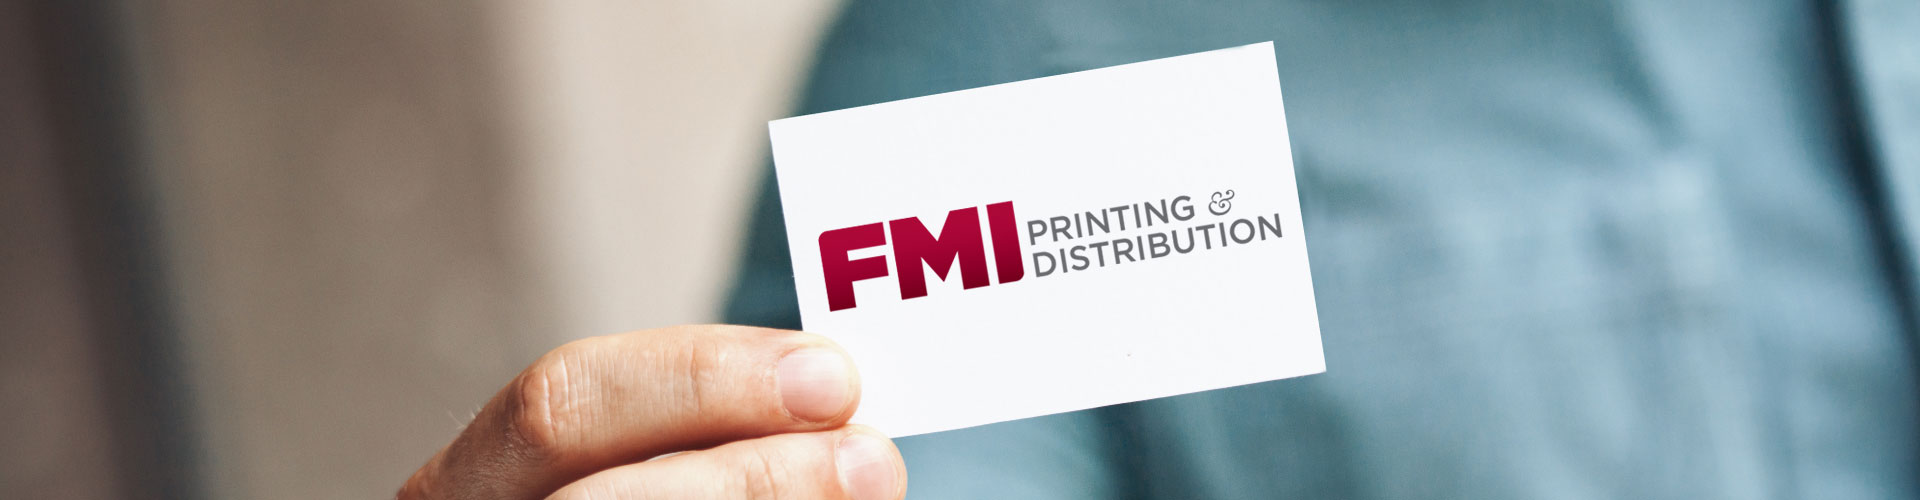 FMI Business card logo